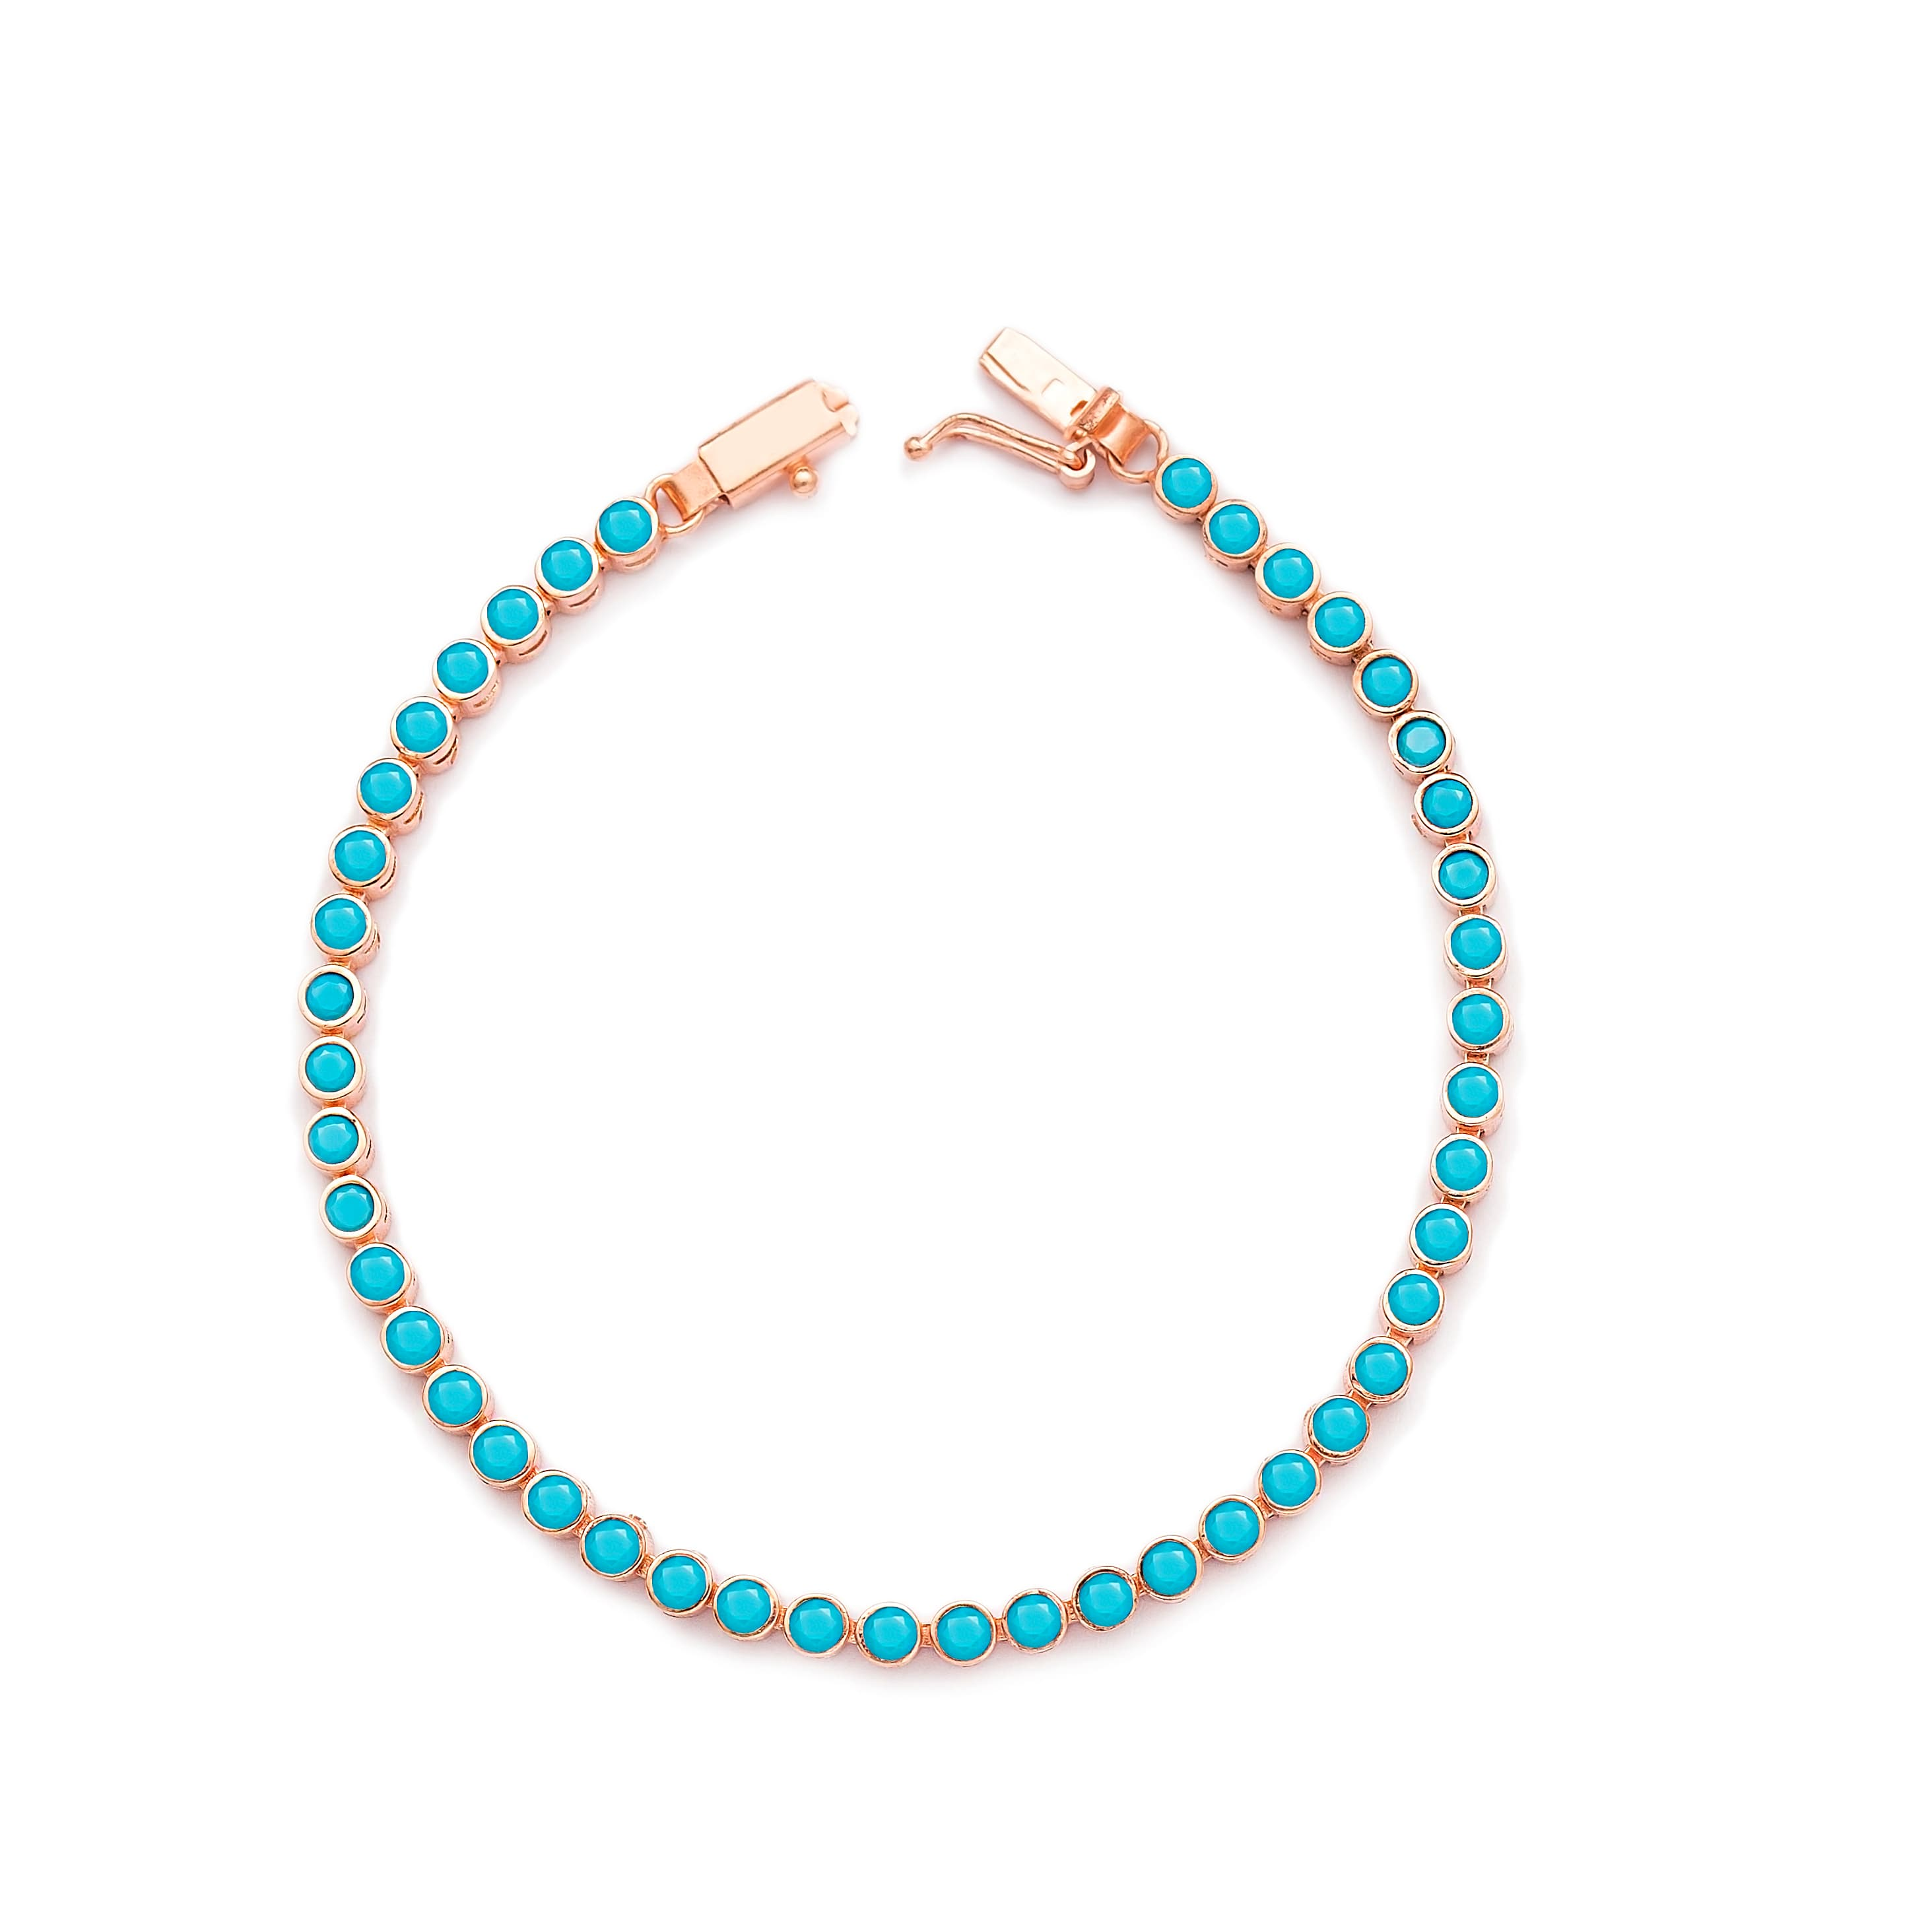 Ø2.5 mm Turquoise Stone Tennis Bracelet Turkish Handcrafted Wholesale 925 Sterling Silver Jewelry